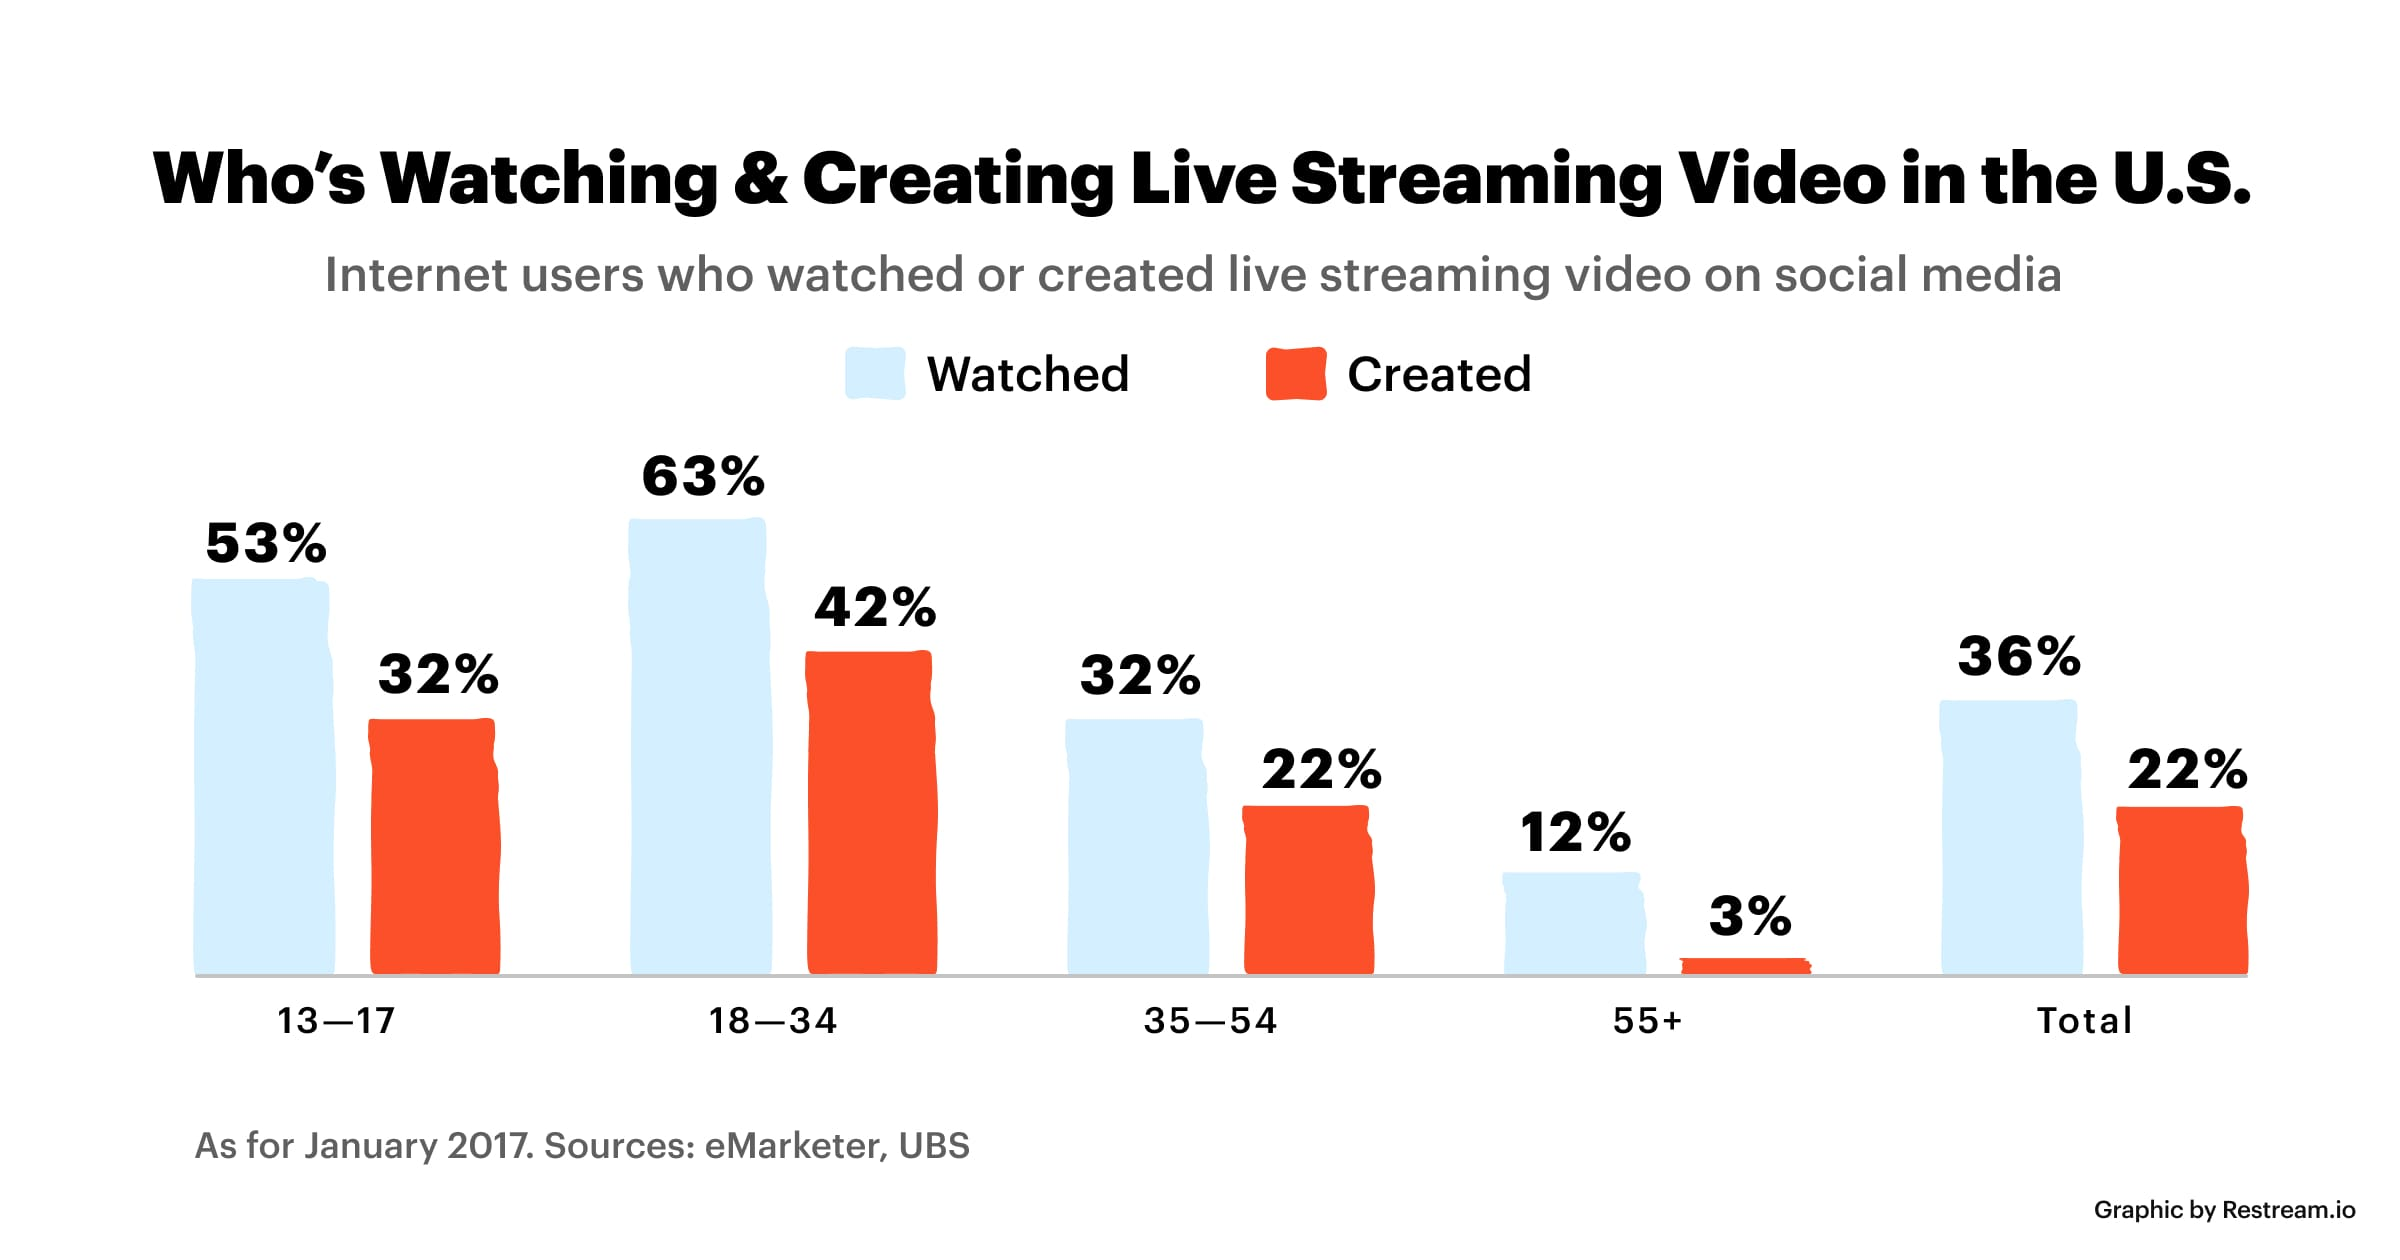 Statistics on who's watching and creating live streaming video in the U.S.